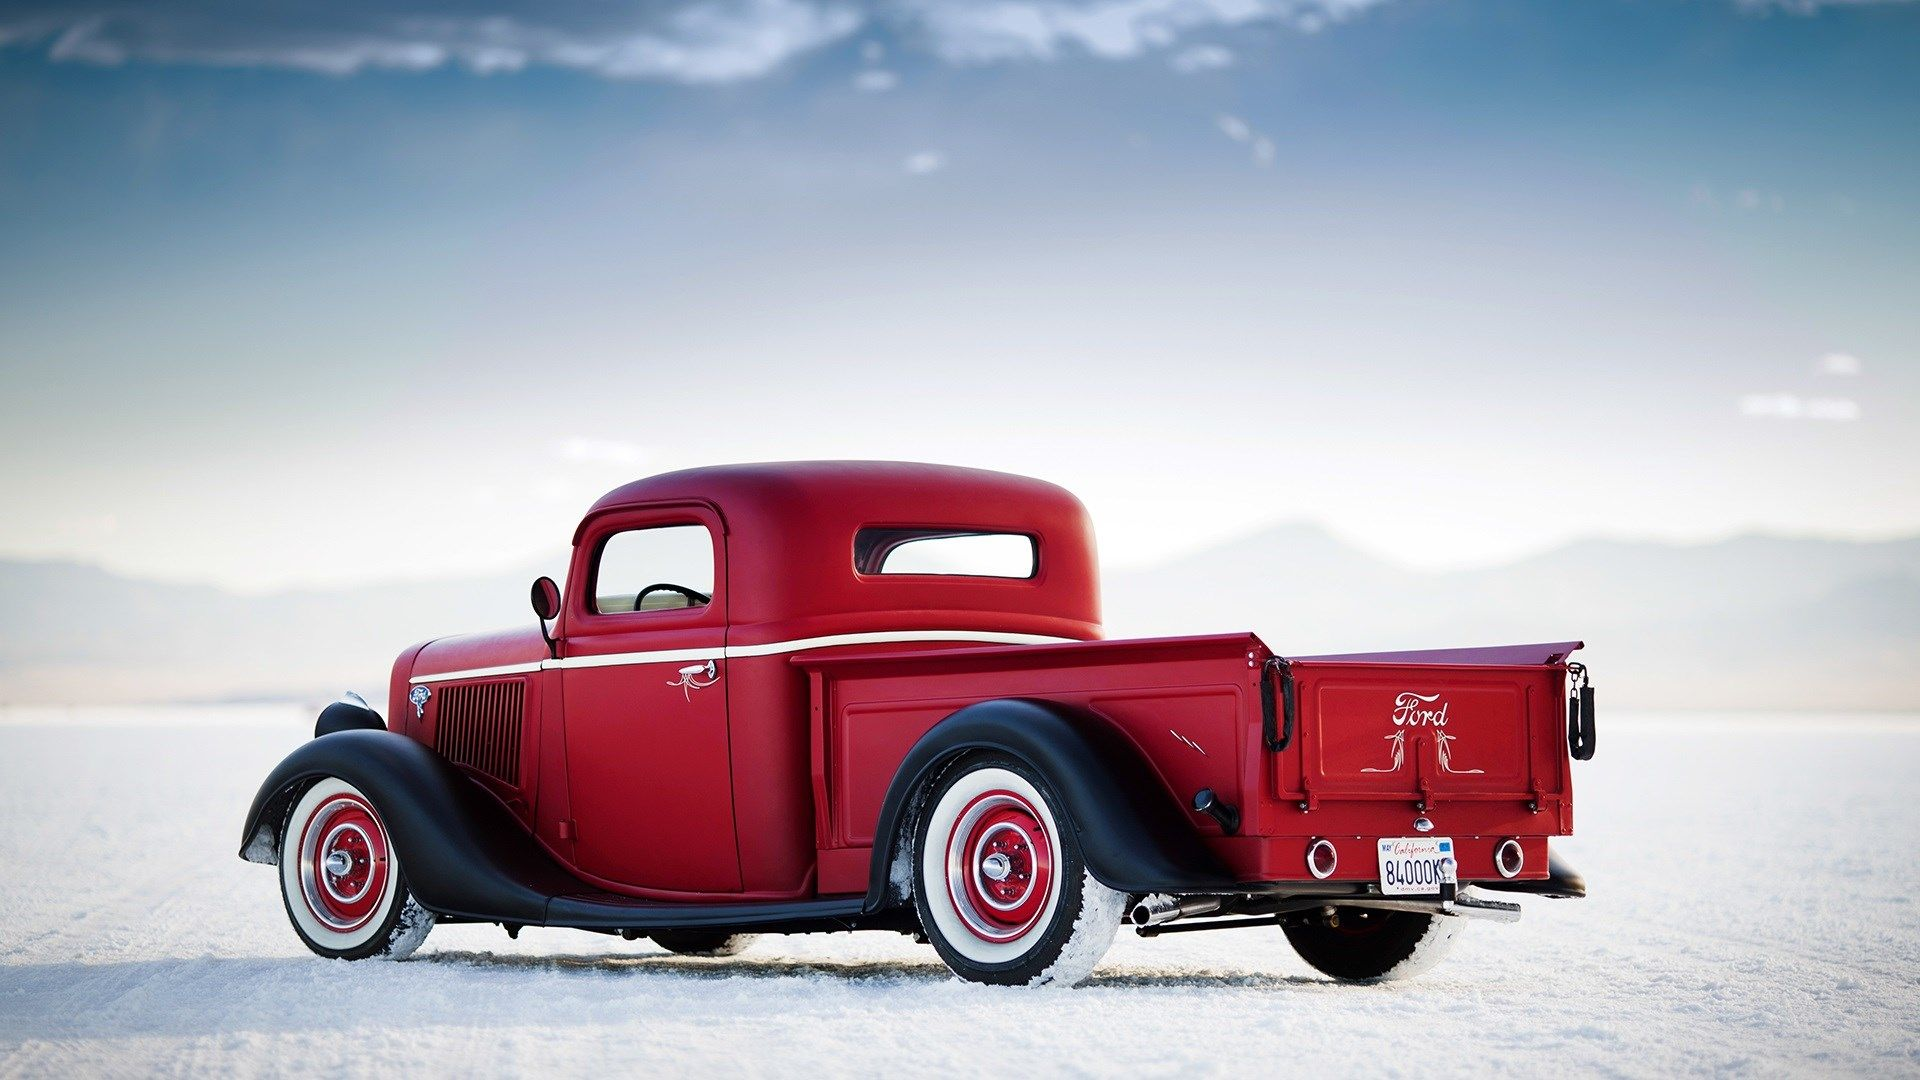 Red Classic Car Hd Wallpaper Freehdwall Com Free Hd Wallpapers For Your Desktop Ford Hot Rod Hot Rod Pickup Truck Yeah